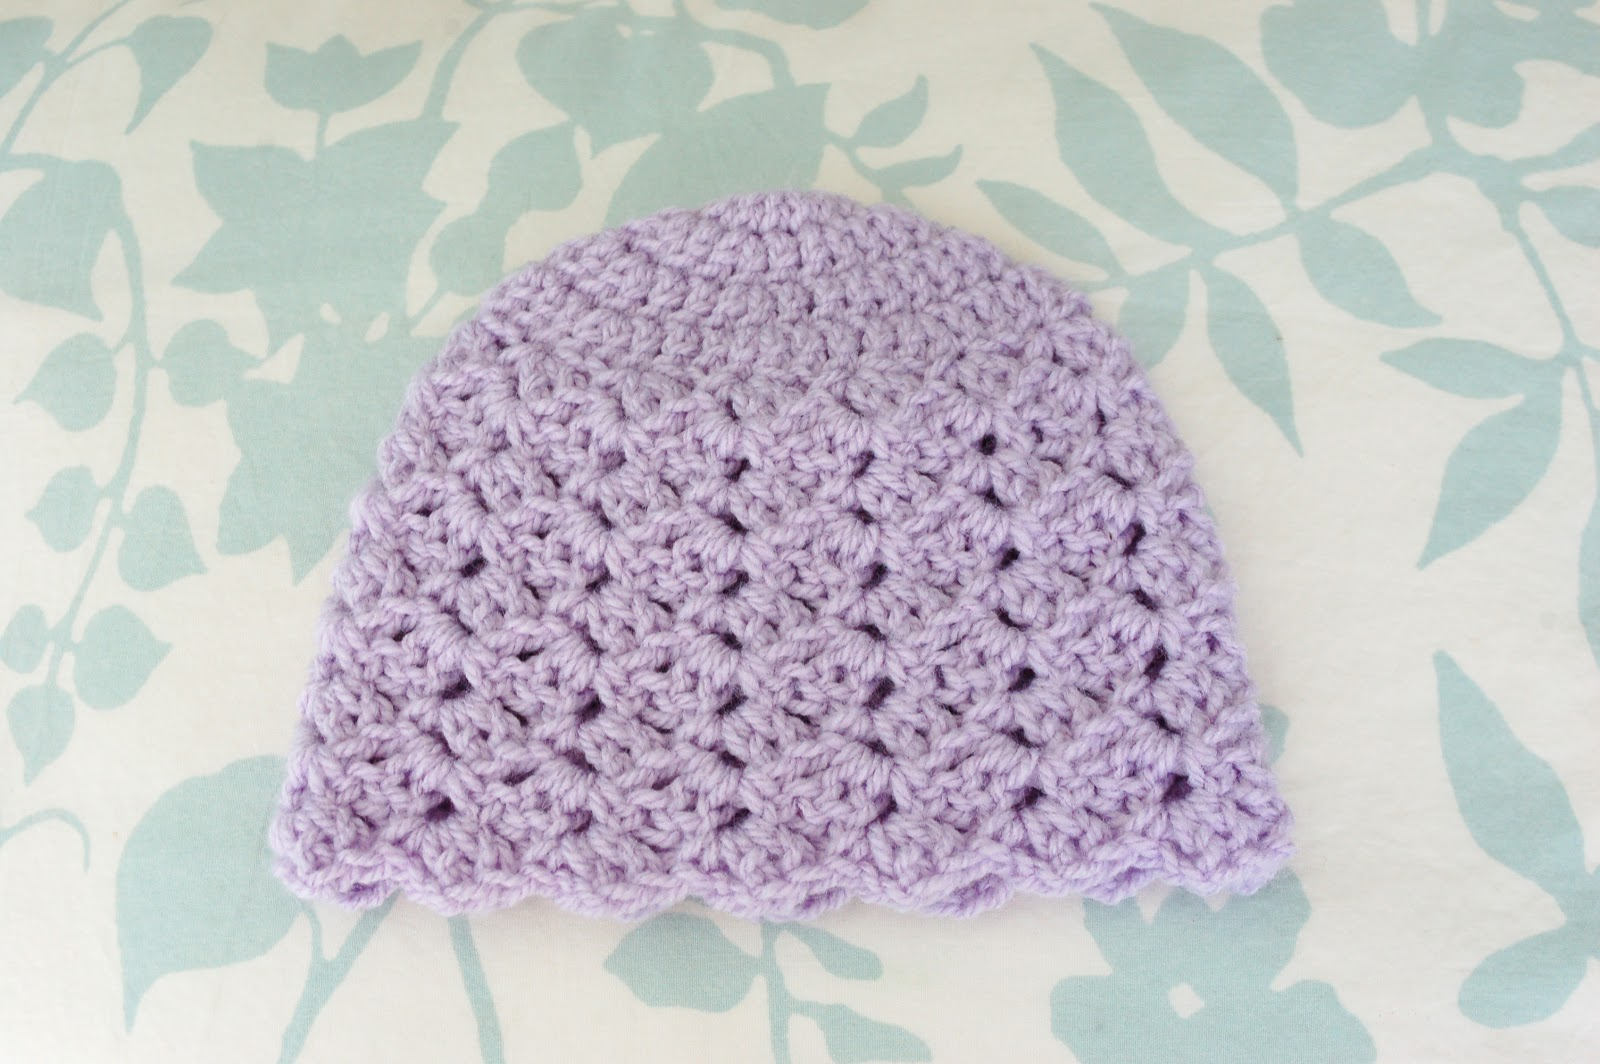 Crochet Patterns Baby Hats : Free Crochet Patterns Baby Hats Newborn